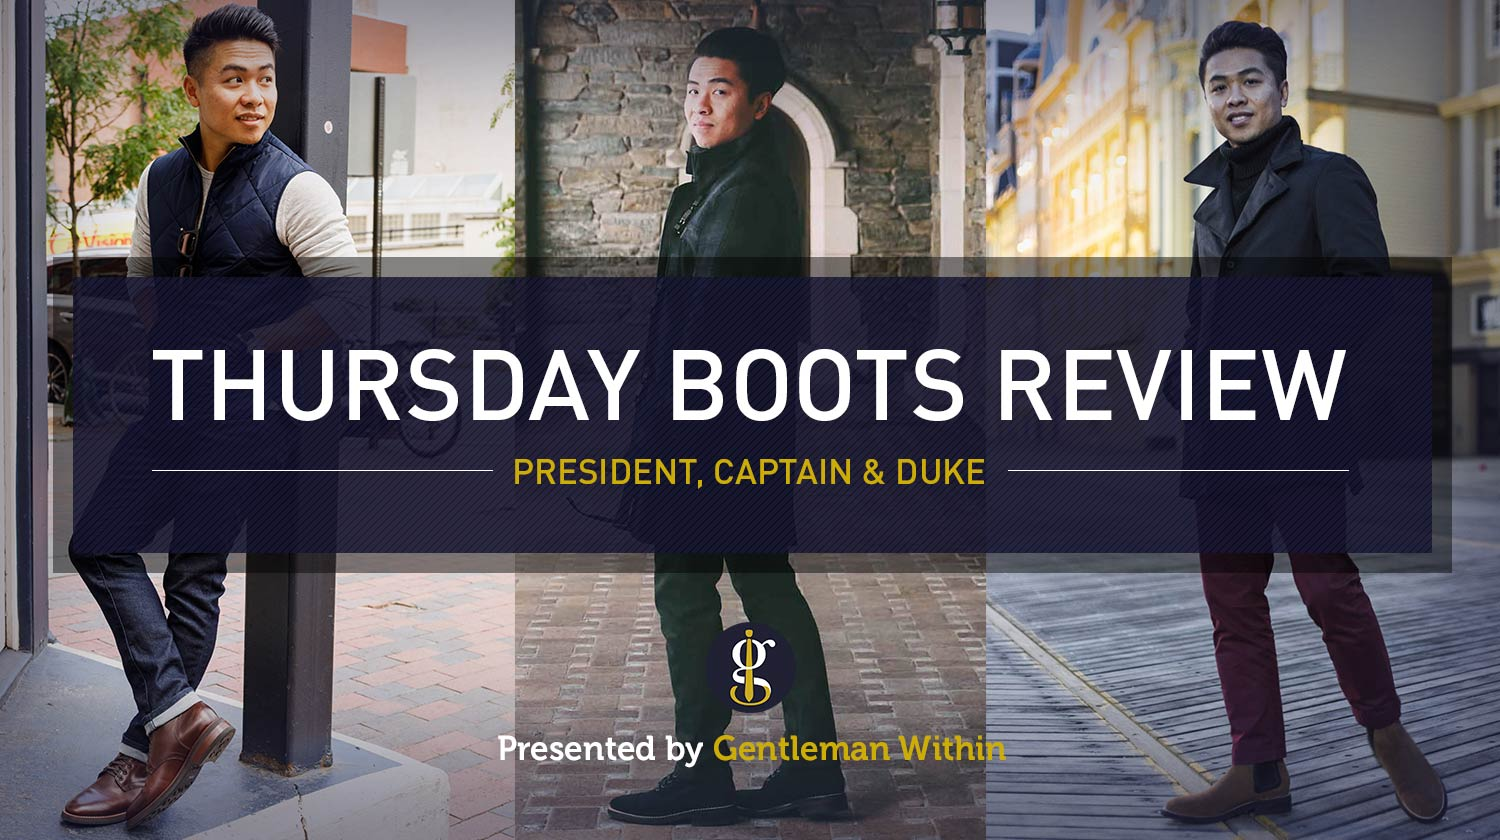 8d5b69b0699 Thursday Boots Review: 2 Years Later | The President, Captain & Duke